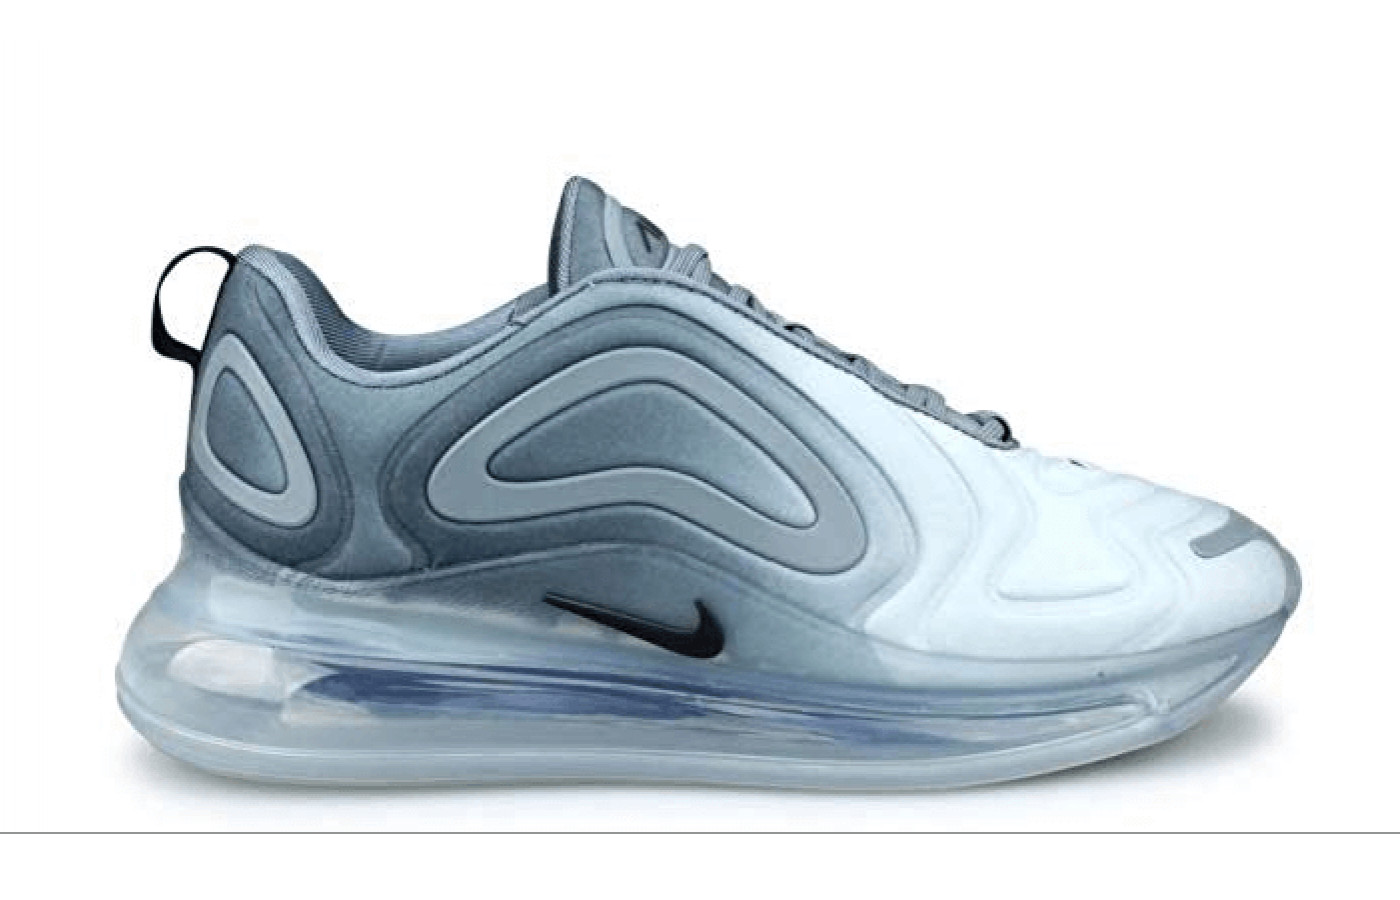 d07ec47870 Nike Air Max 720 Reviewed - To Buy or Not in June 2019?